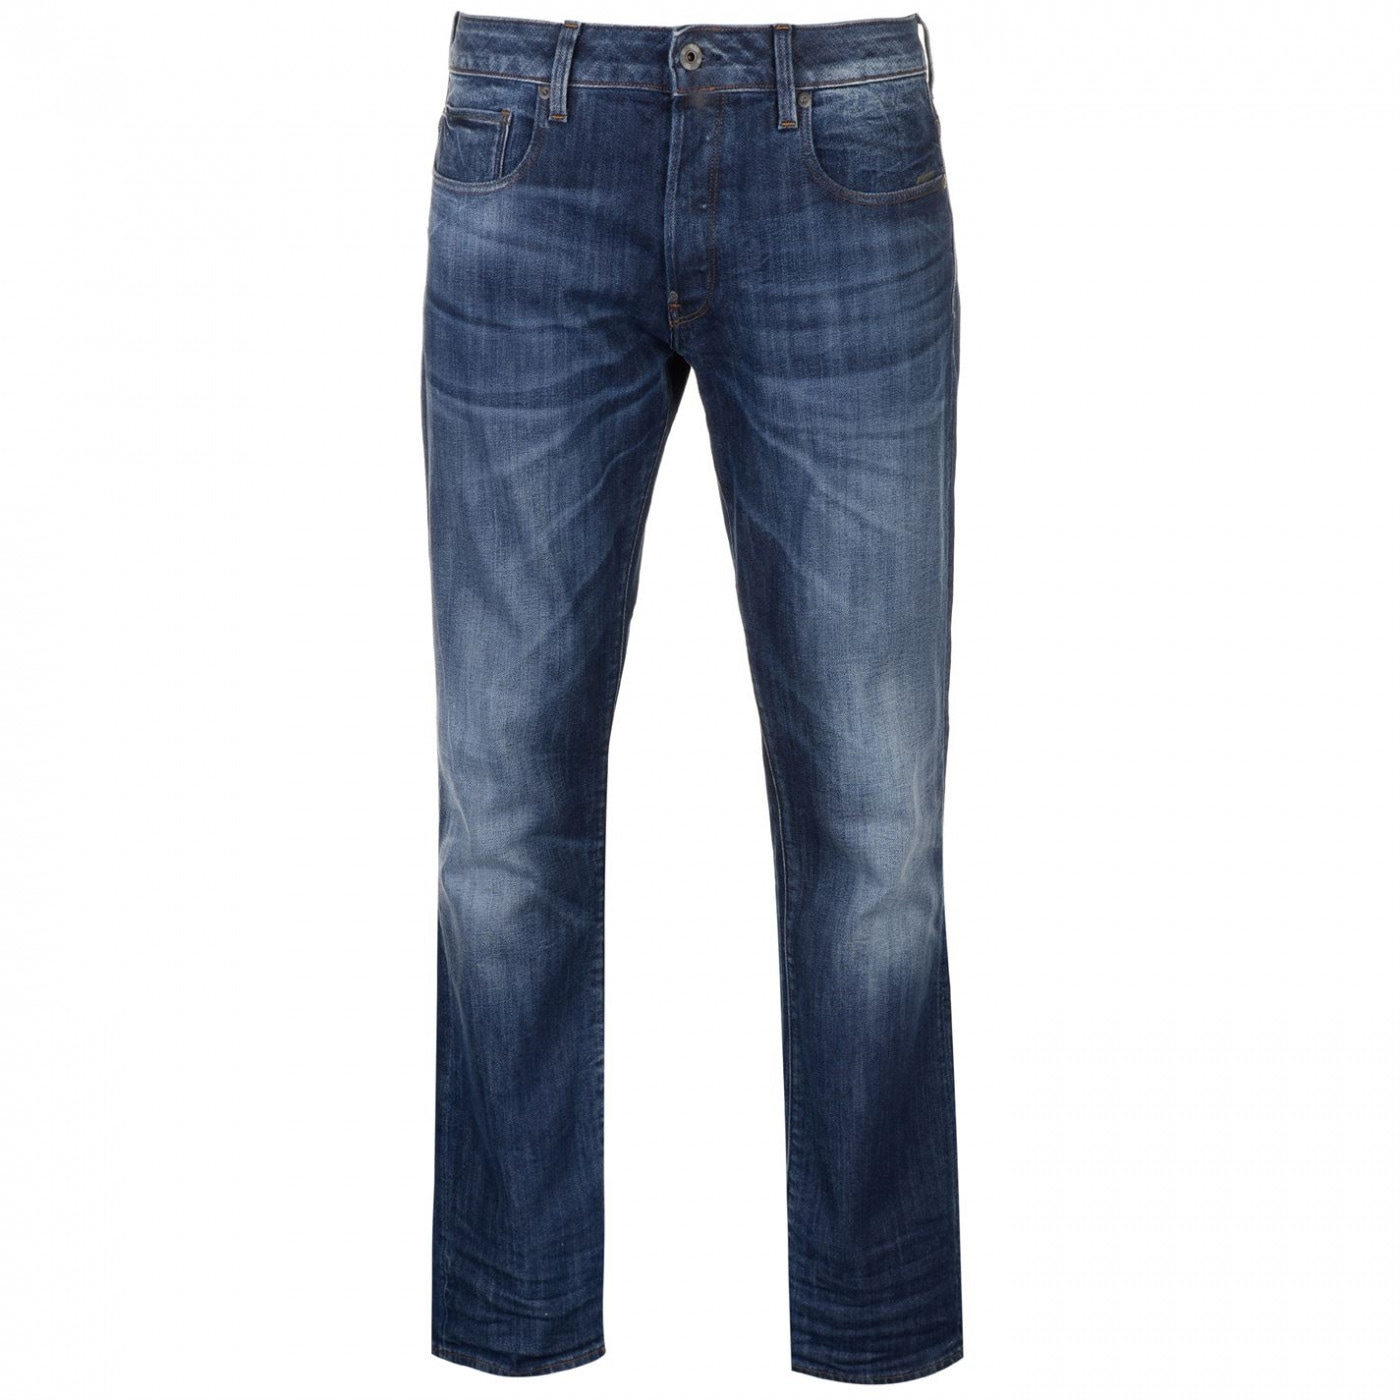 G Star Star Attacc Jeans